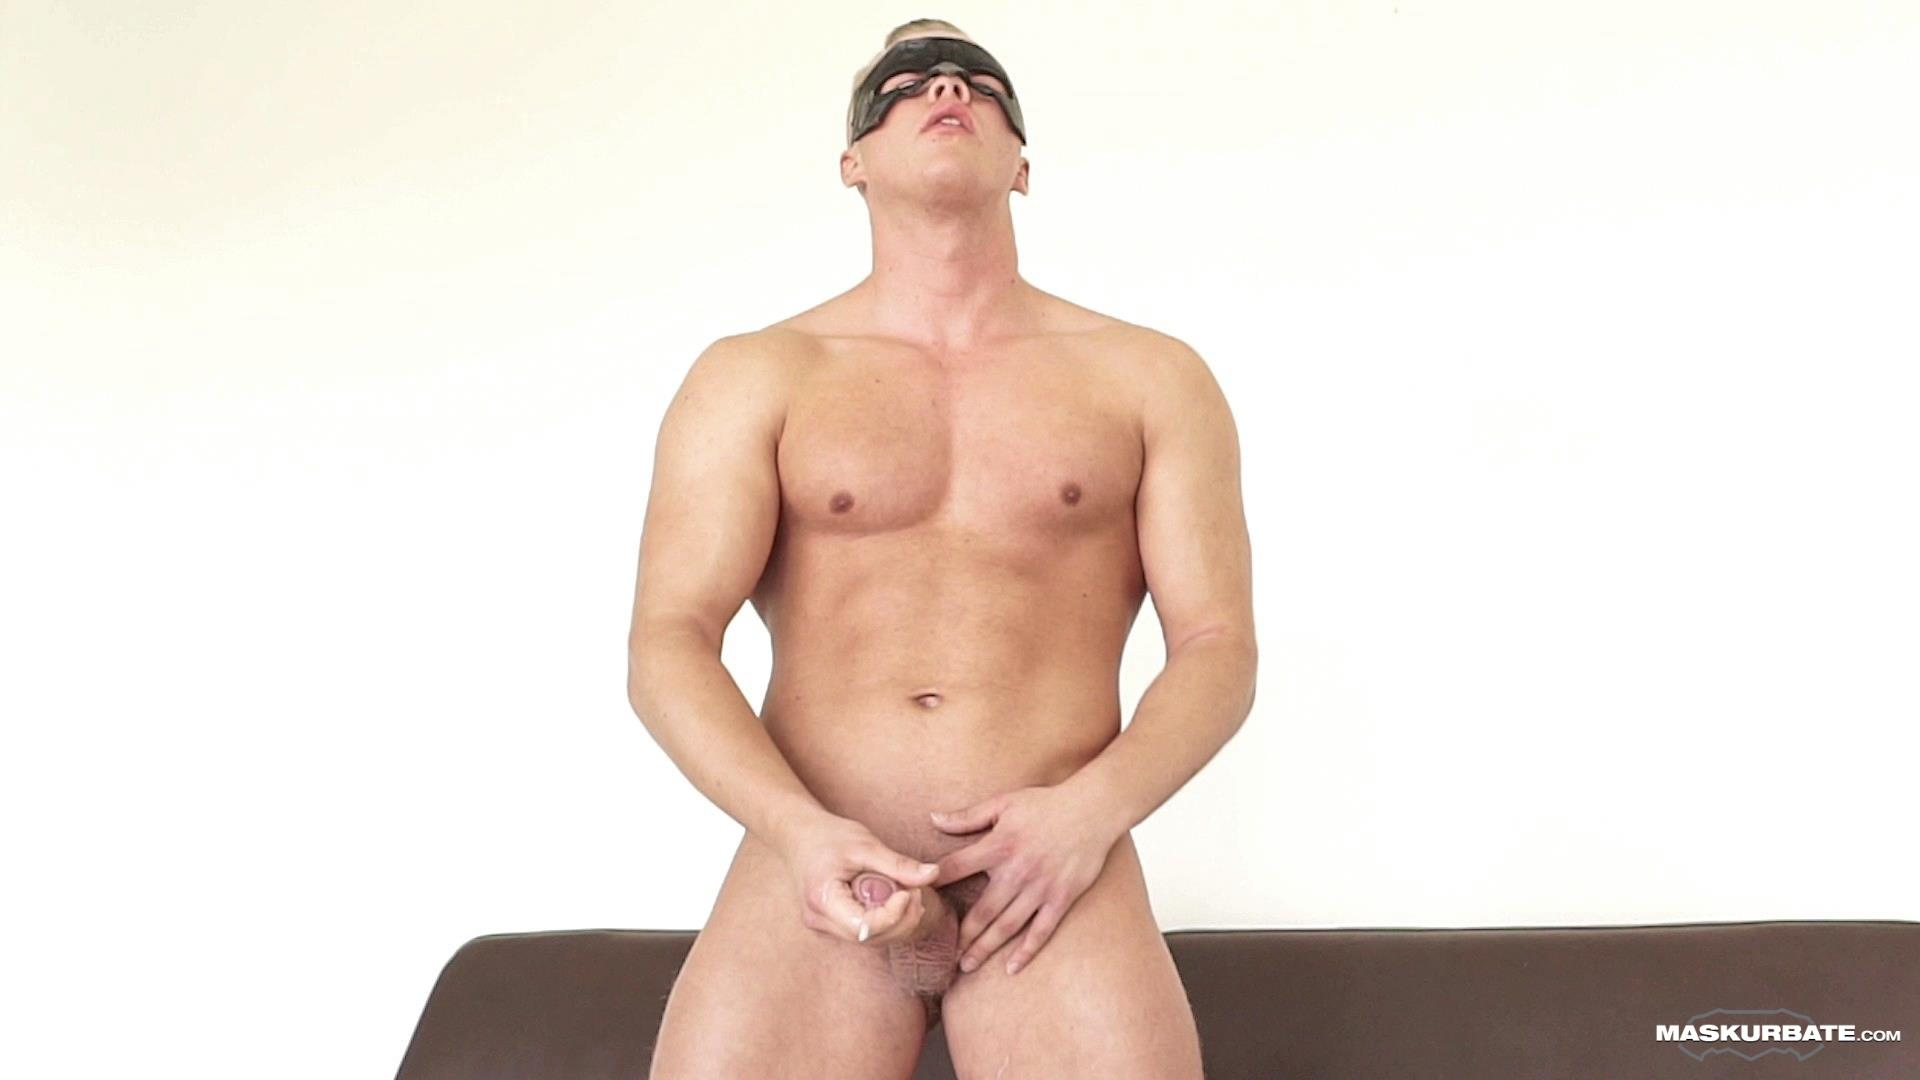 Maskurbate-Mickey-Big-Uncut-Cock-Muscle-Hunk-Jerking-Off-Video-11 Big Uncut Cock Blond Muscle Hunk Auditions For Gay Porn